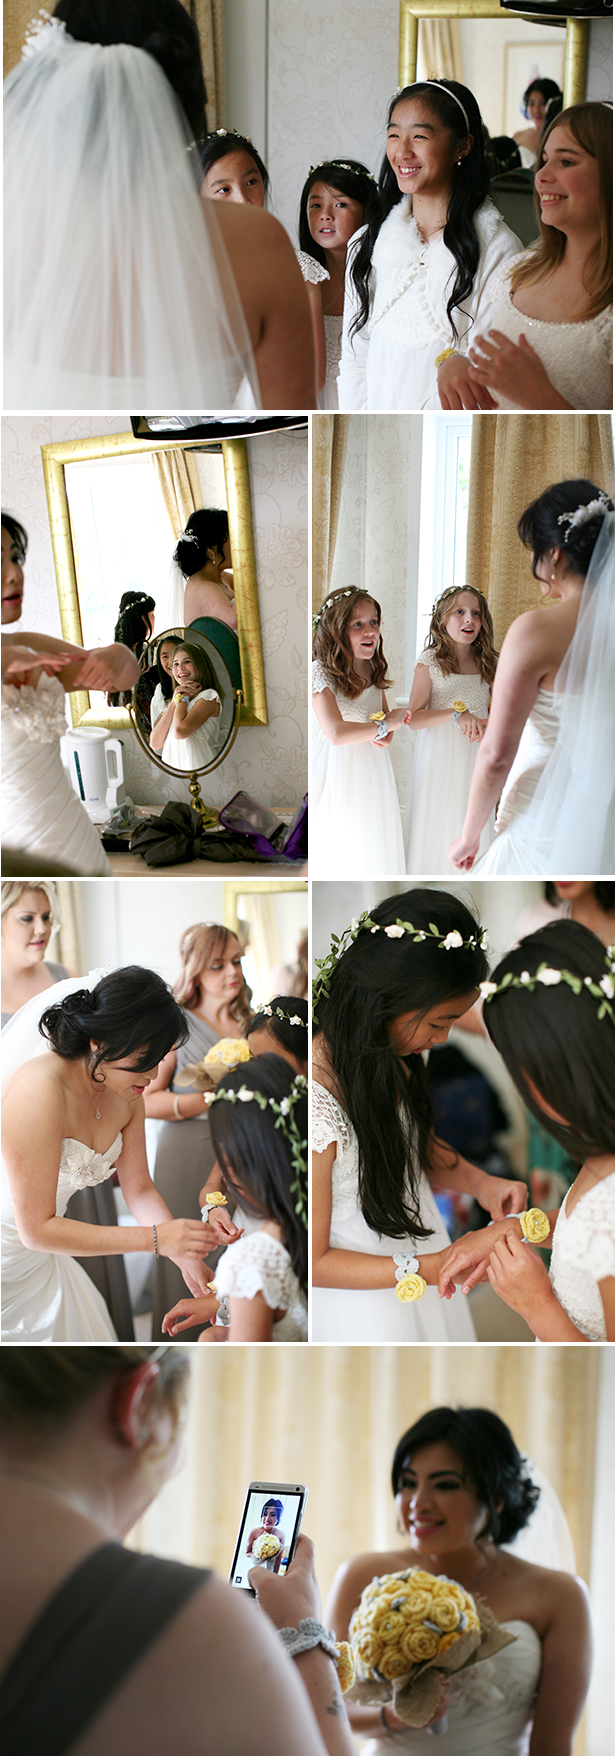 Flower girls seeing the bride for the first time | First look moments you have to capture | Sophie & Chris's real wedding | Confetti.co.uk